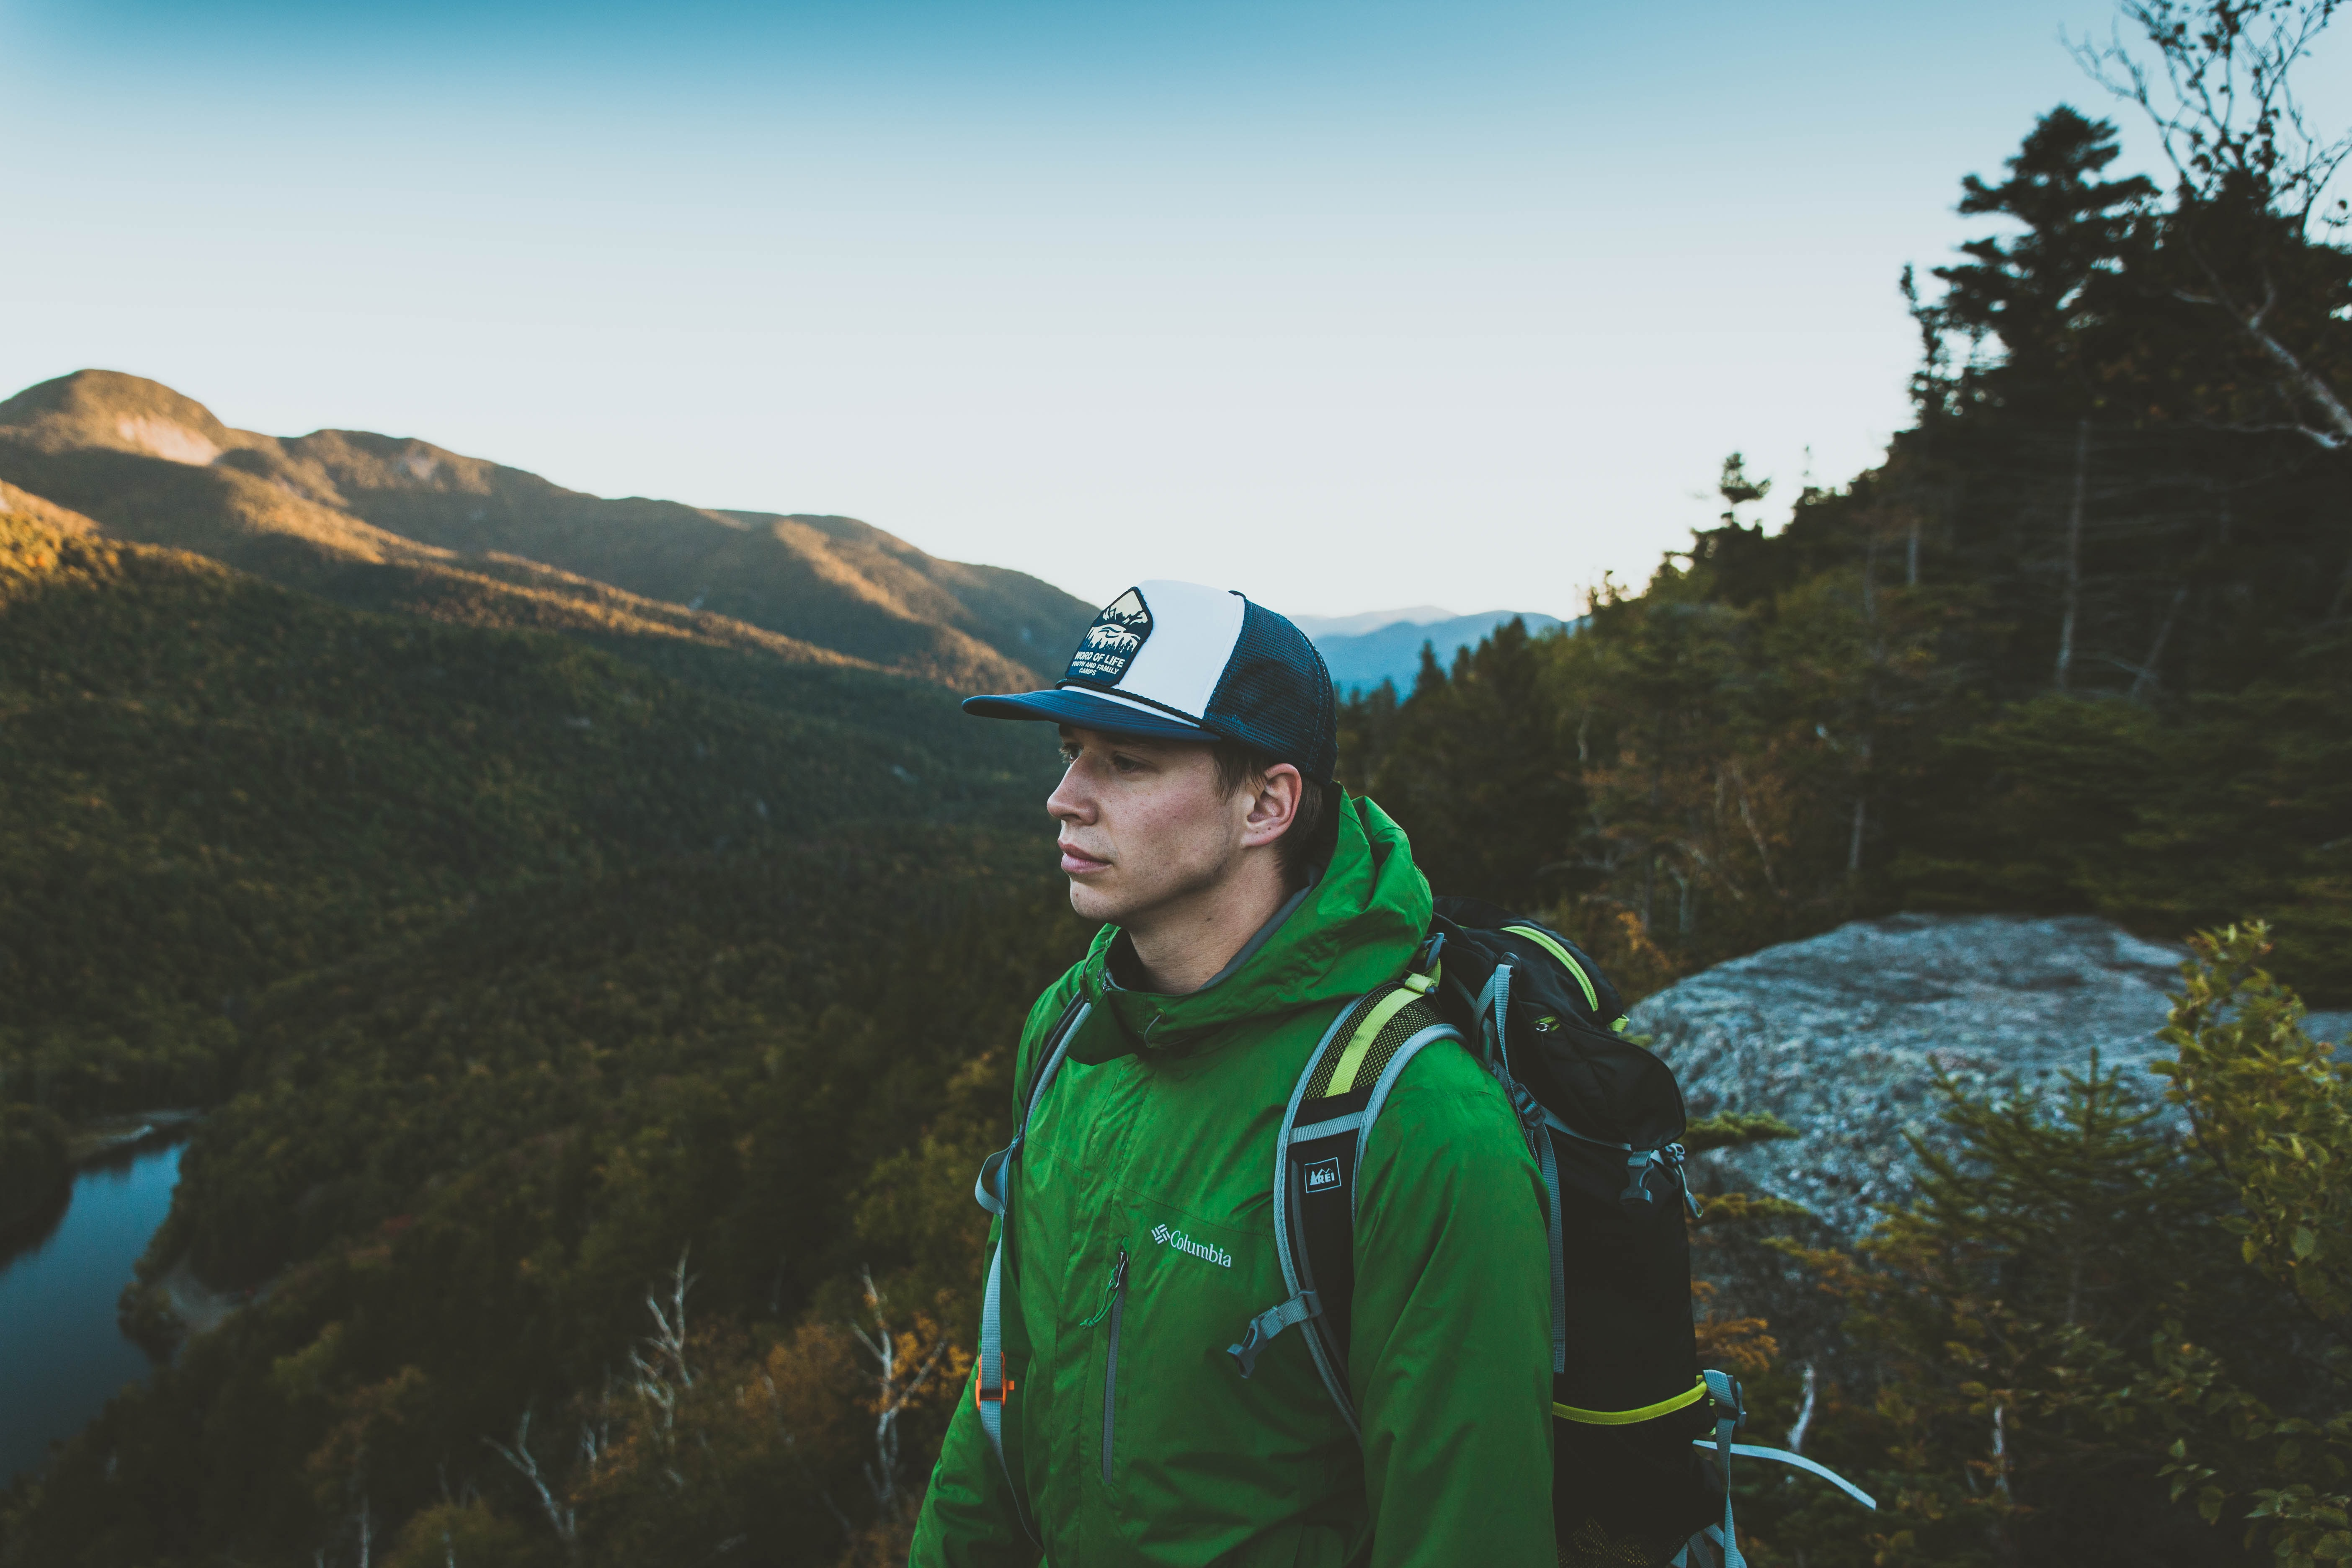 A young male hiker in a wooded mountainous landscape